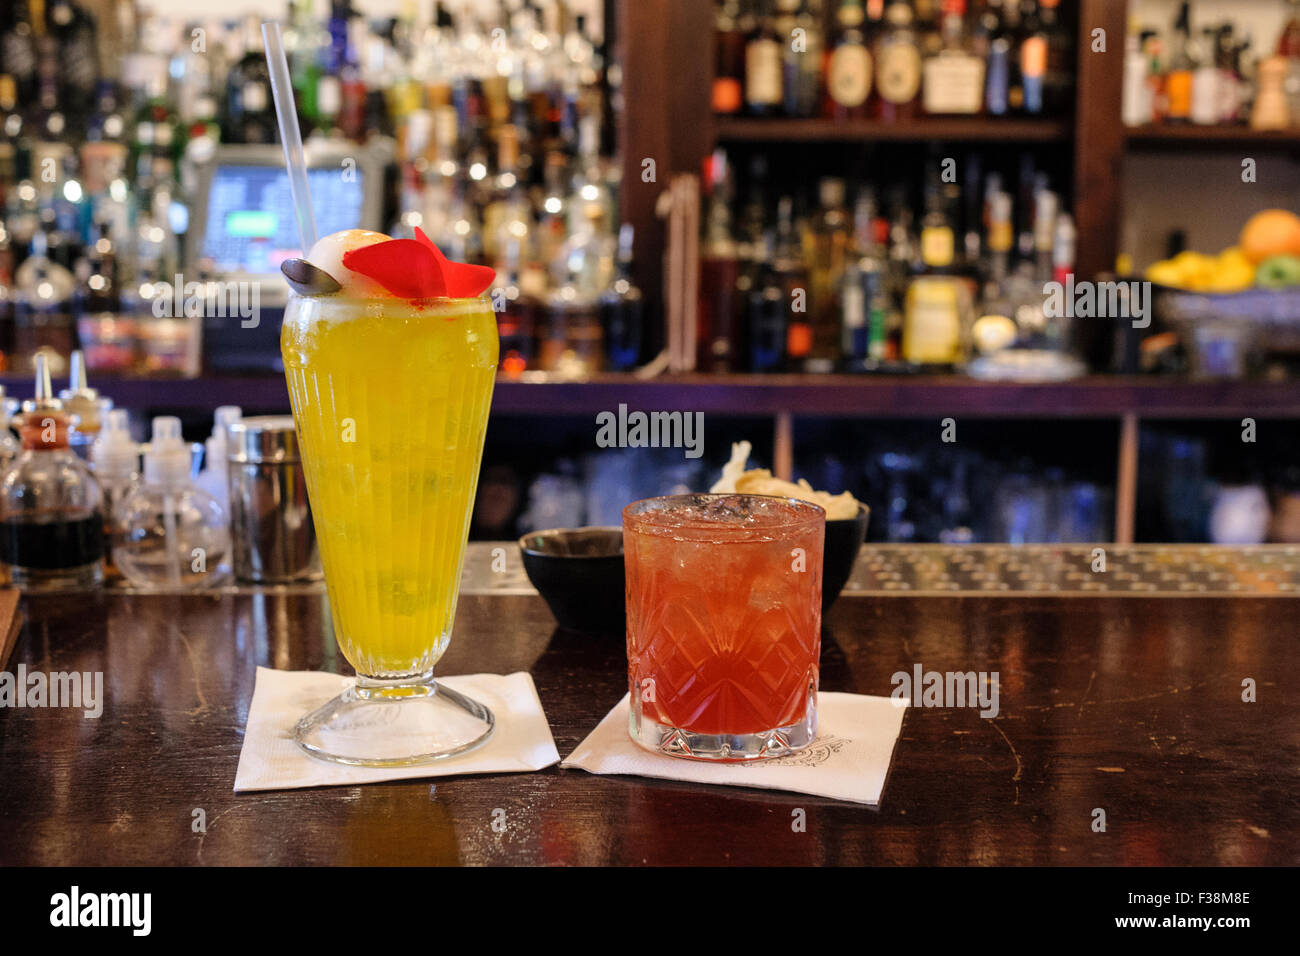 Cocktails, Tales and Spirits bar, Amsterdam, Netherlands, Europe - Stock Image